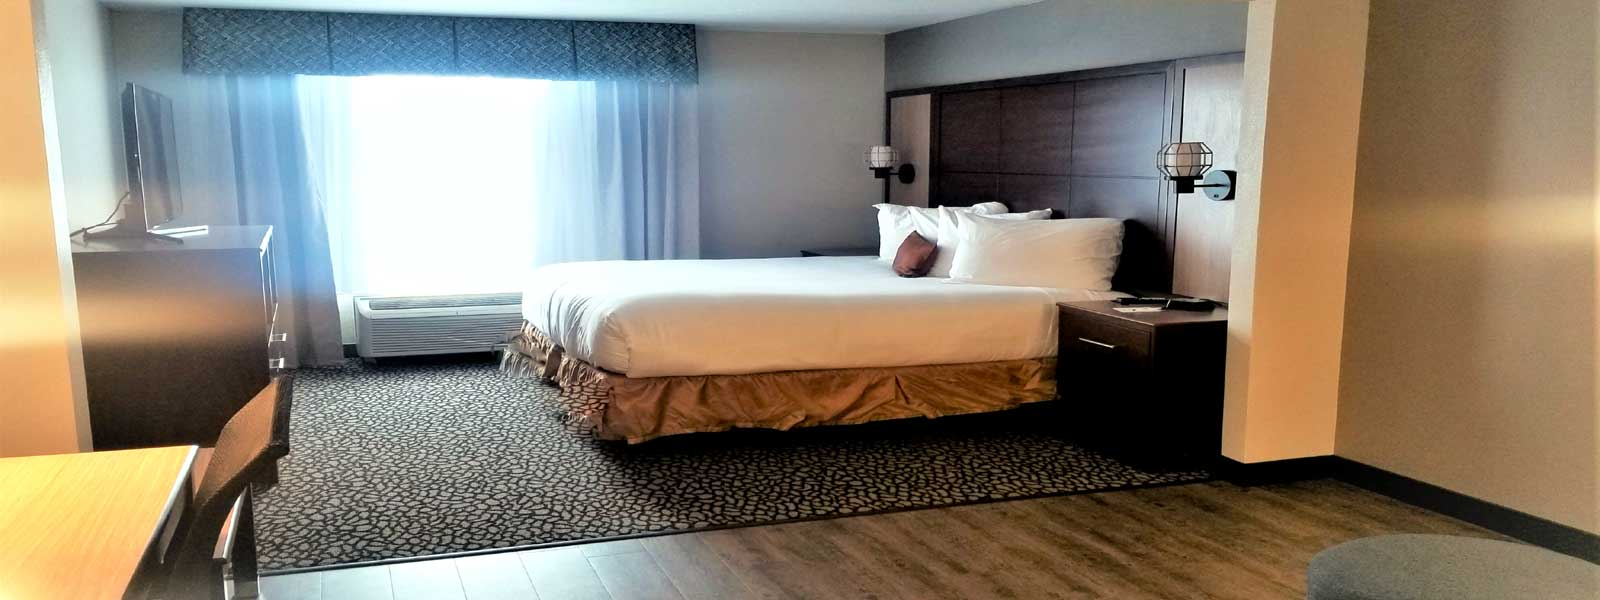 Wingate Dallas DFW Airport Affordable Lodging in Irving Texas Clean Comfortable Rooms Newly Remodeled Close to Downtown